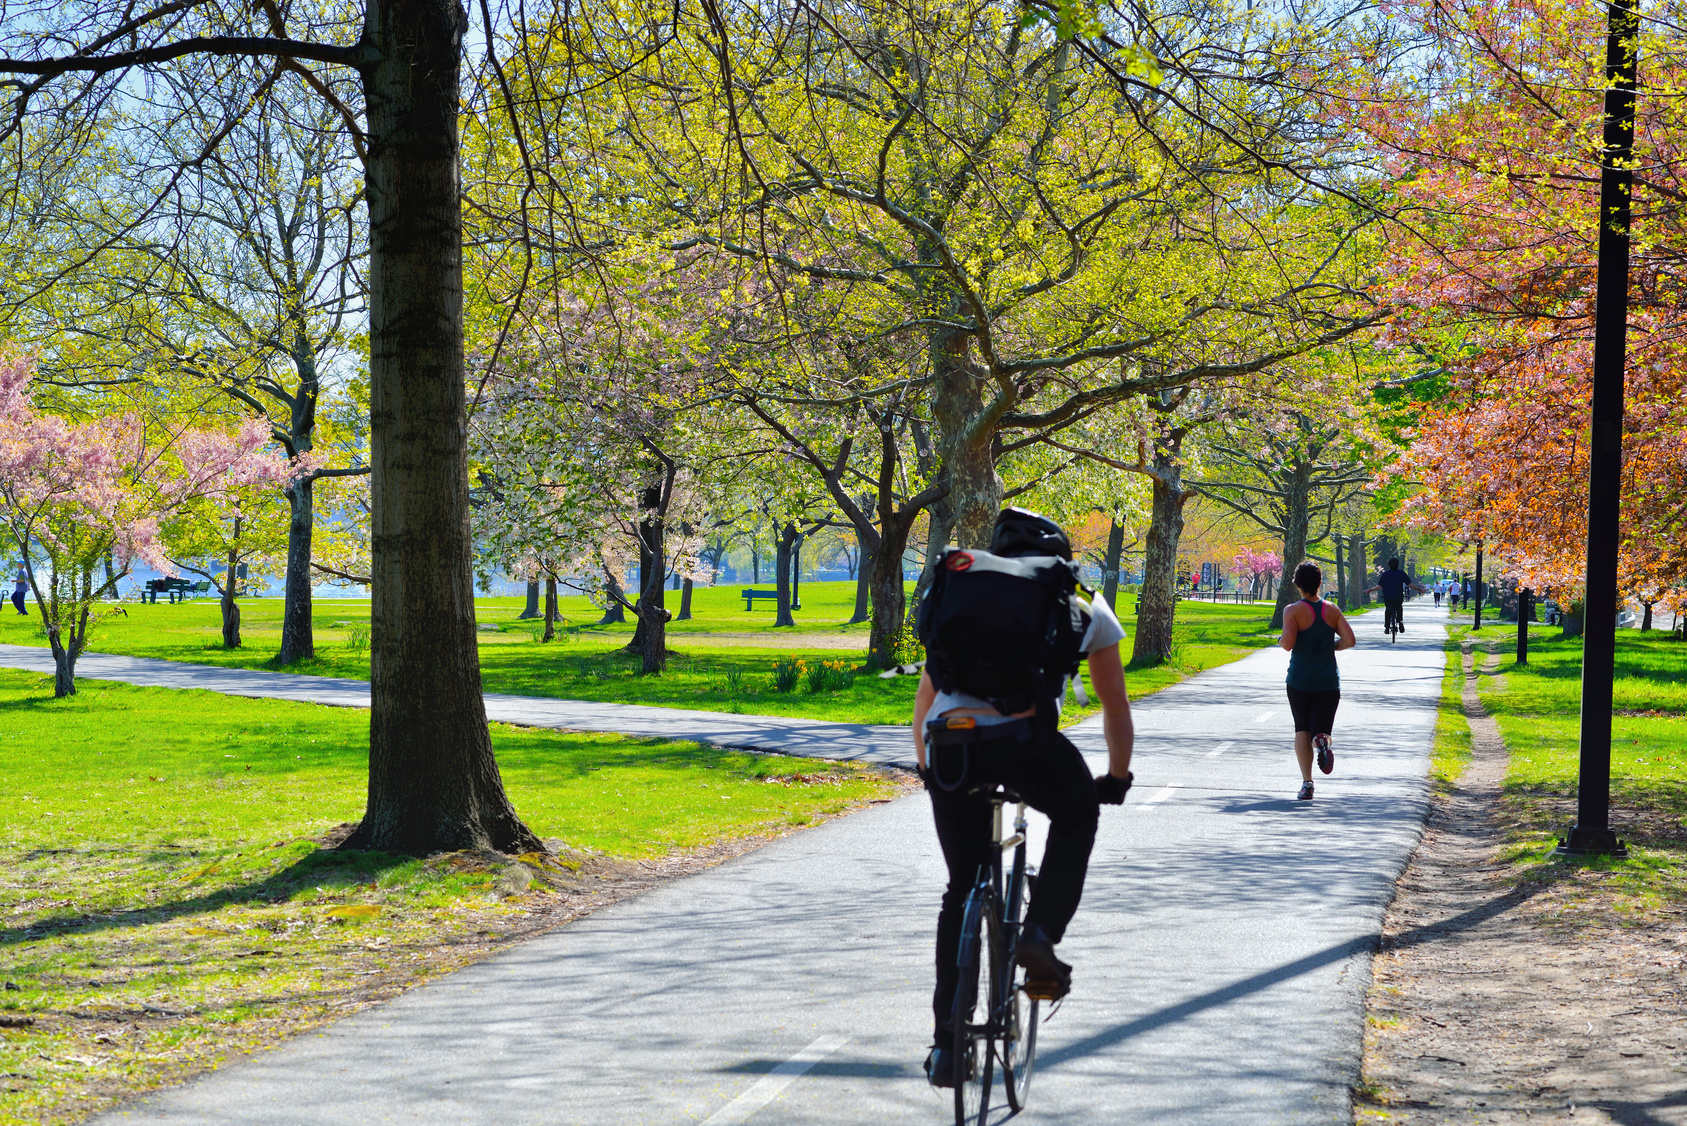 People cyclin and running on a bike path